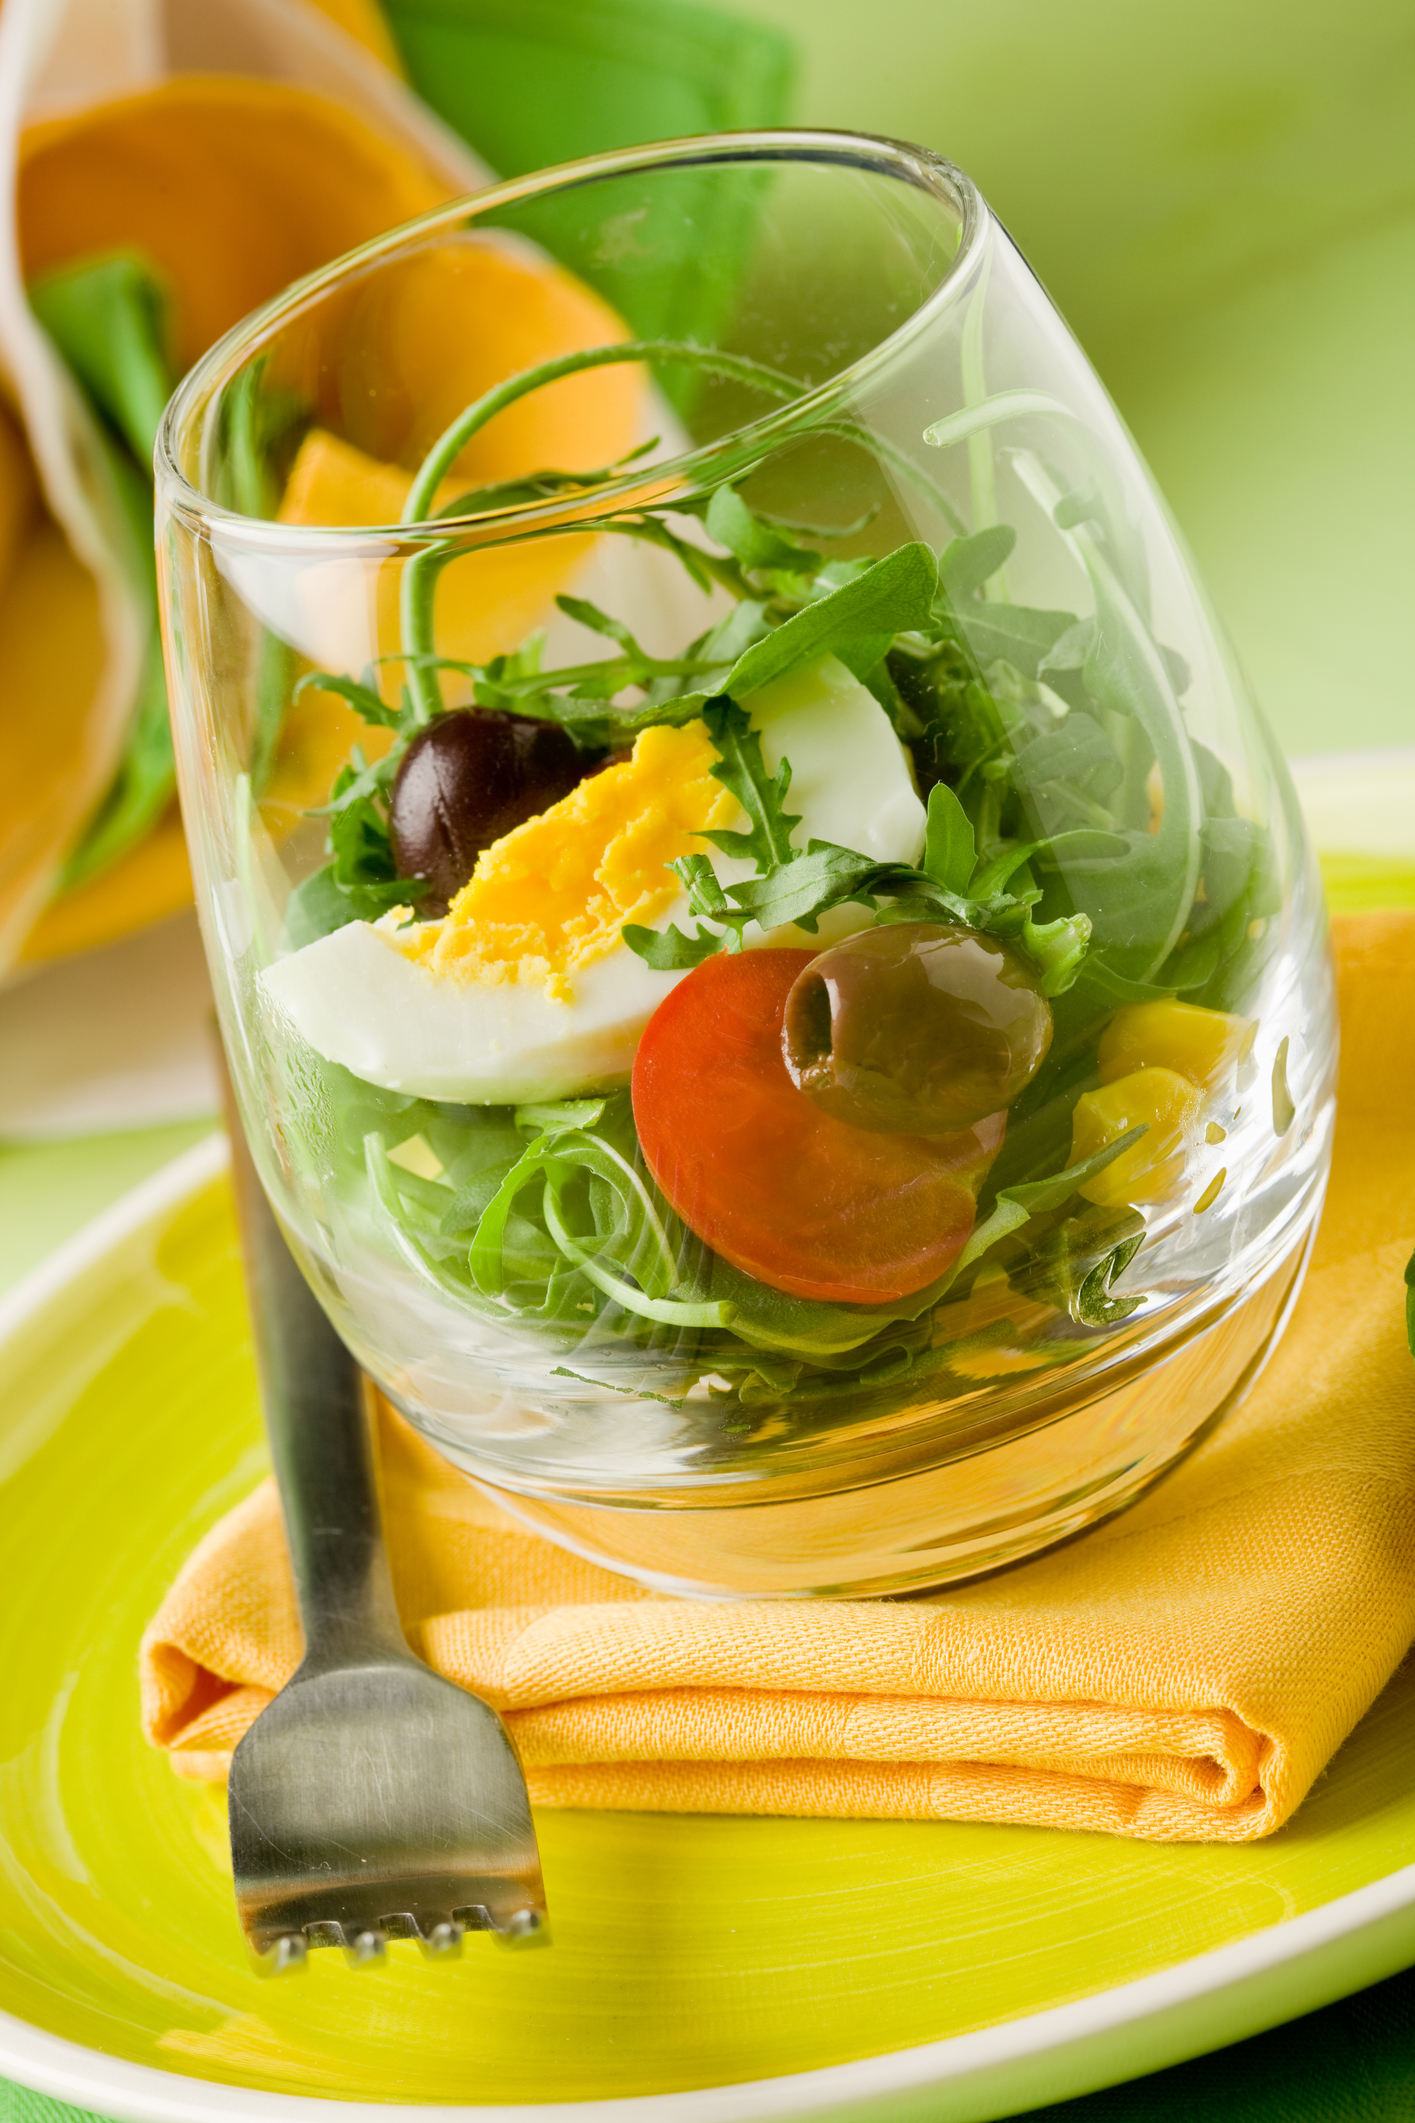 Salad in a Glass.jpg